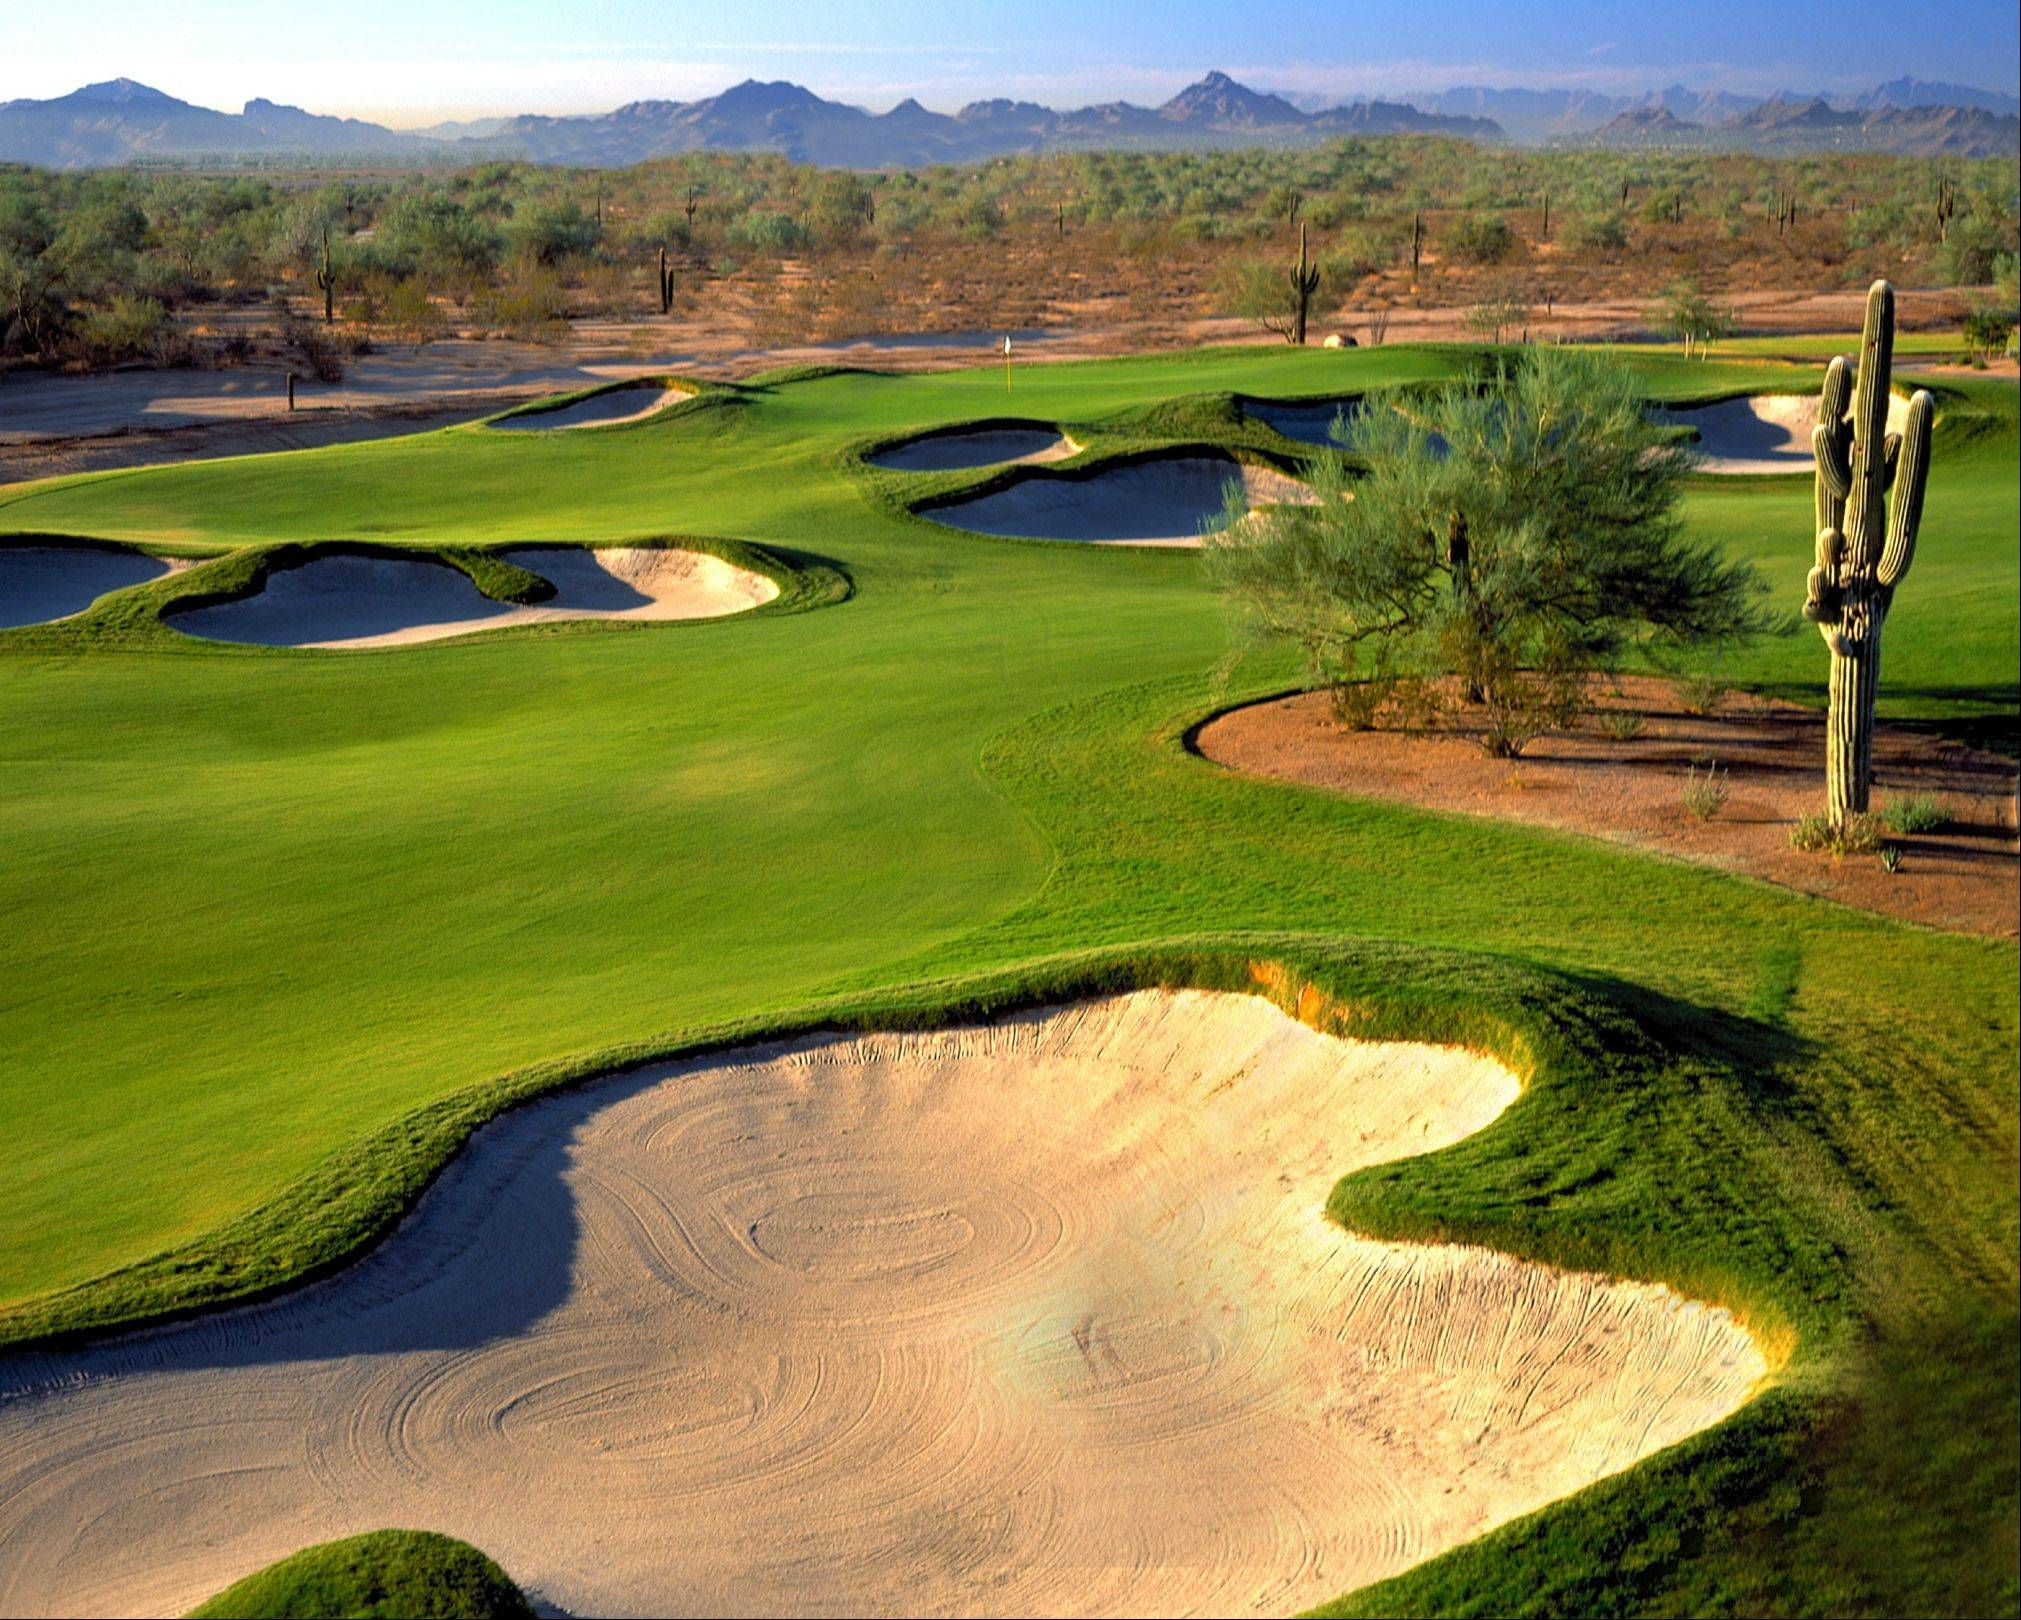 Twenty years ago, many Phoenix-area resorts shut down for the summer because of the heat, now substantial deals are offered that attract locals and tourists alike to places like the Wildfire Golf Club.